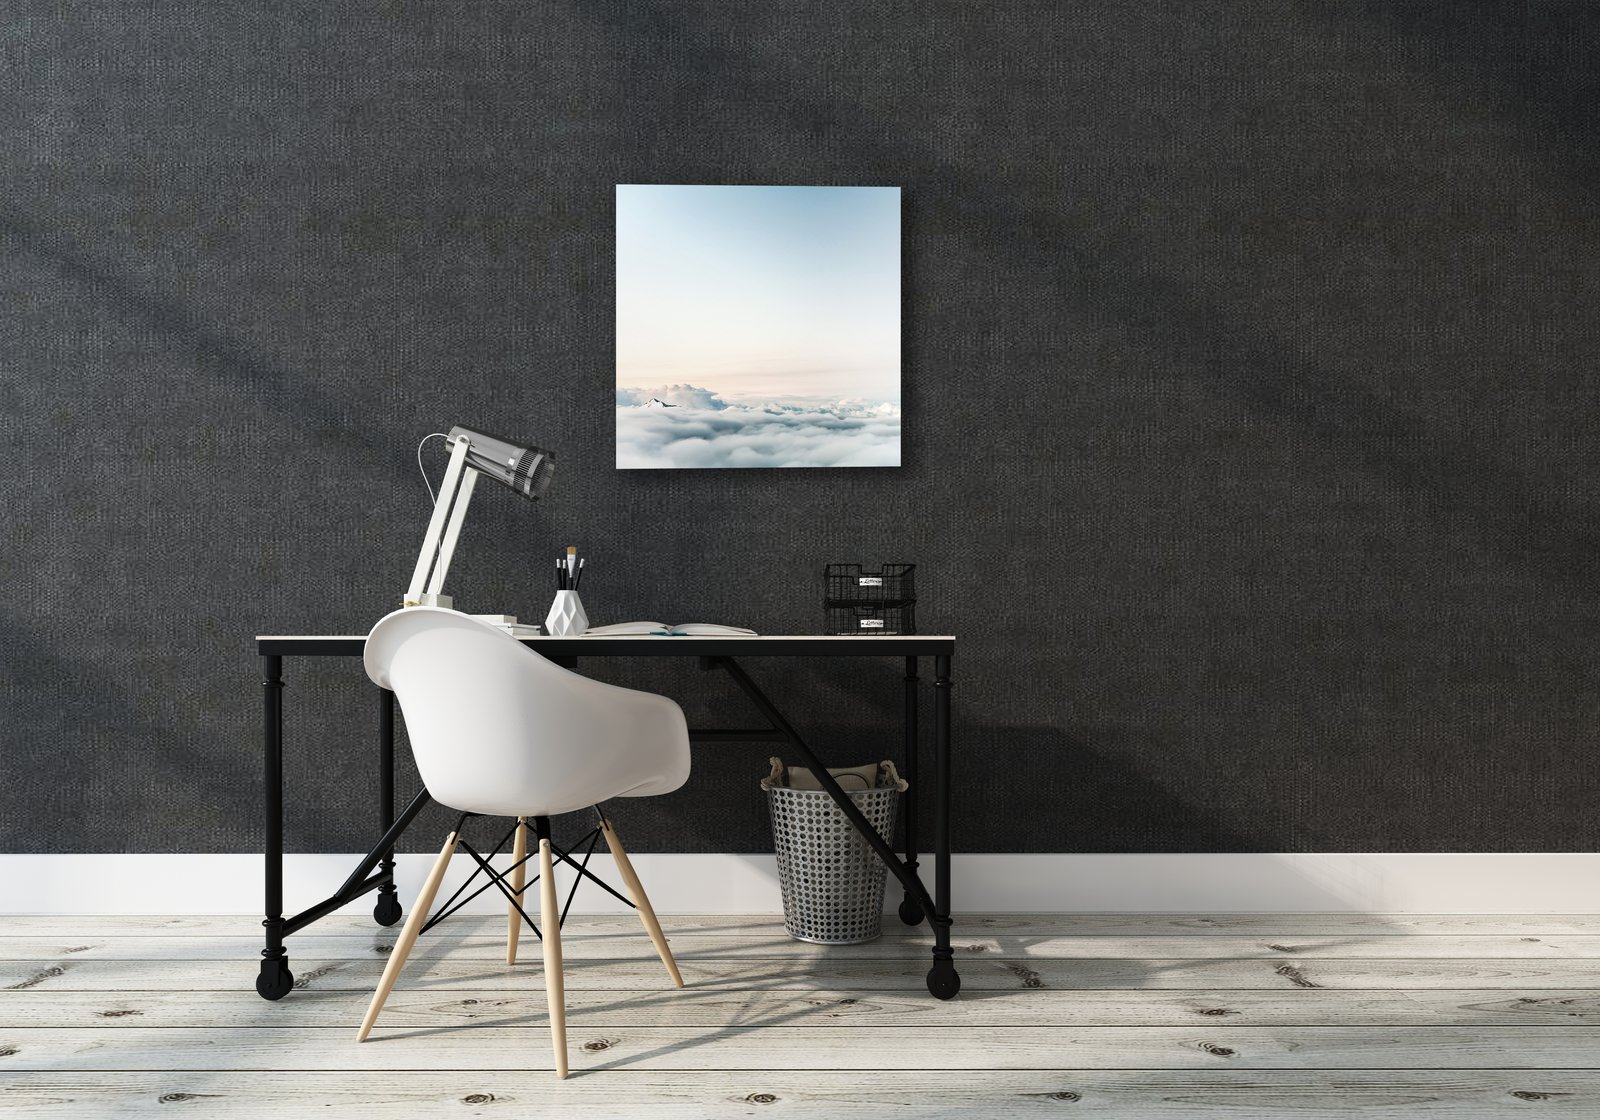 """The canvas comes in four sizes: 24"""" x 24"""", 24"""" x 36"""", 36"""" x 36"""", and 36"""" x 48"""". Soundwall also honors custom orders in size and material and allows you to upload your own images.  Photo 5 of 5 in Upgrade Your Wall With This Connected Canvas"""